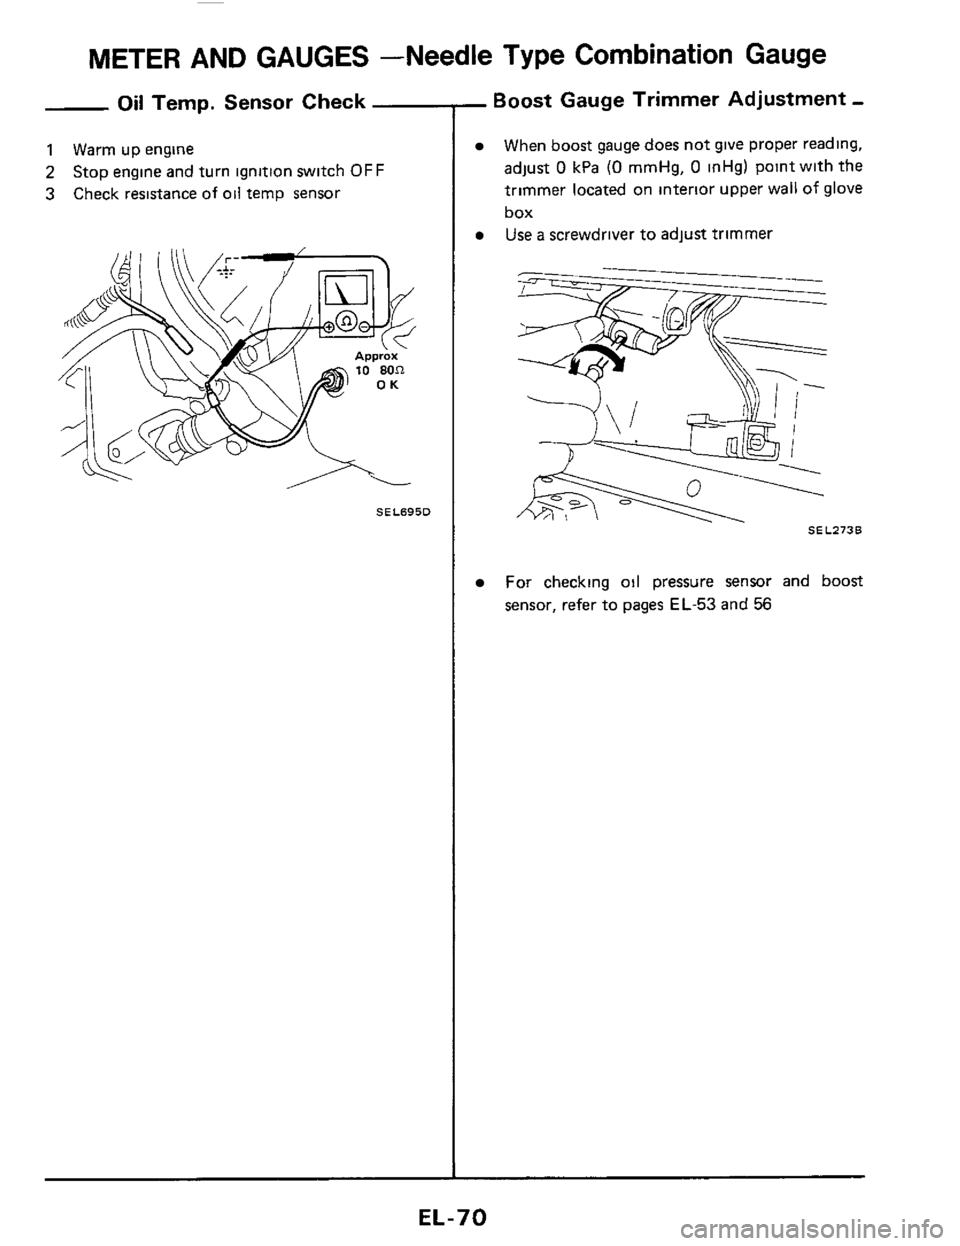 w960_567 69 engine nissan 300zx 1984 z31 electrical system workshop manual  at reclaimingppi.co